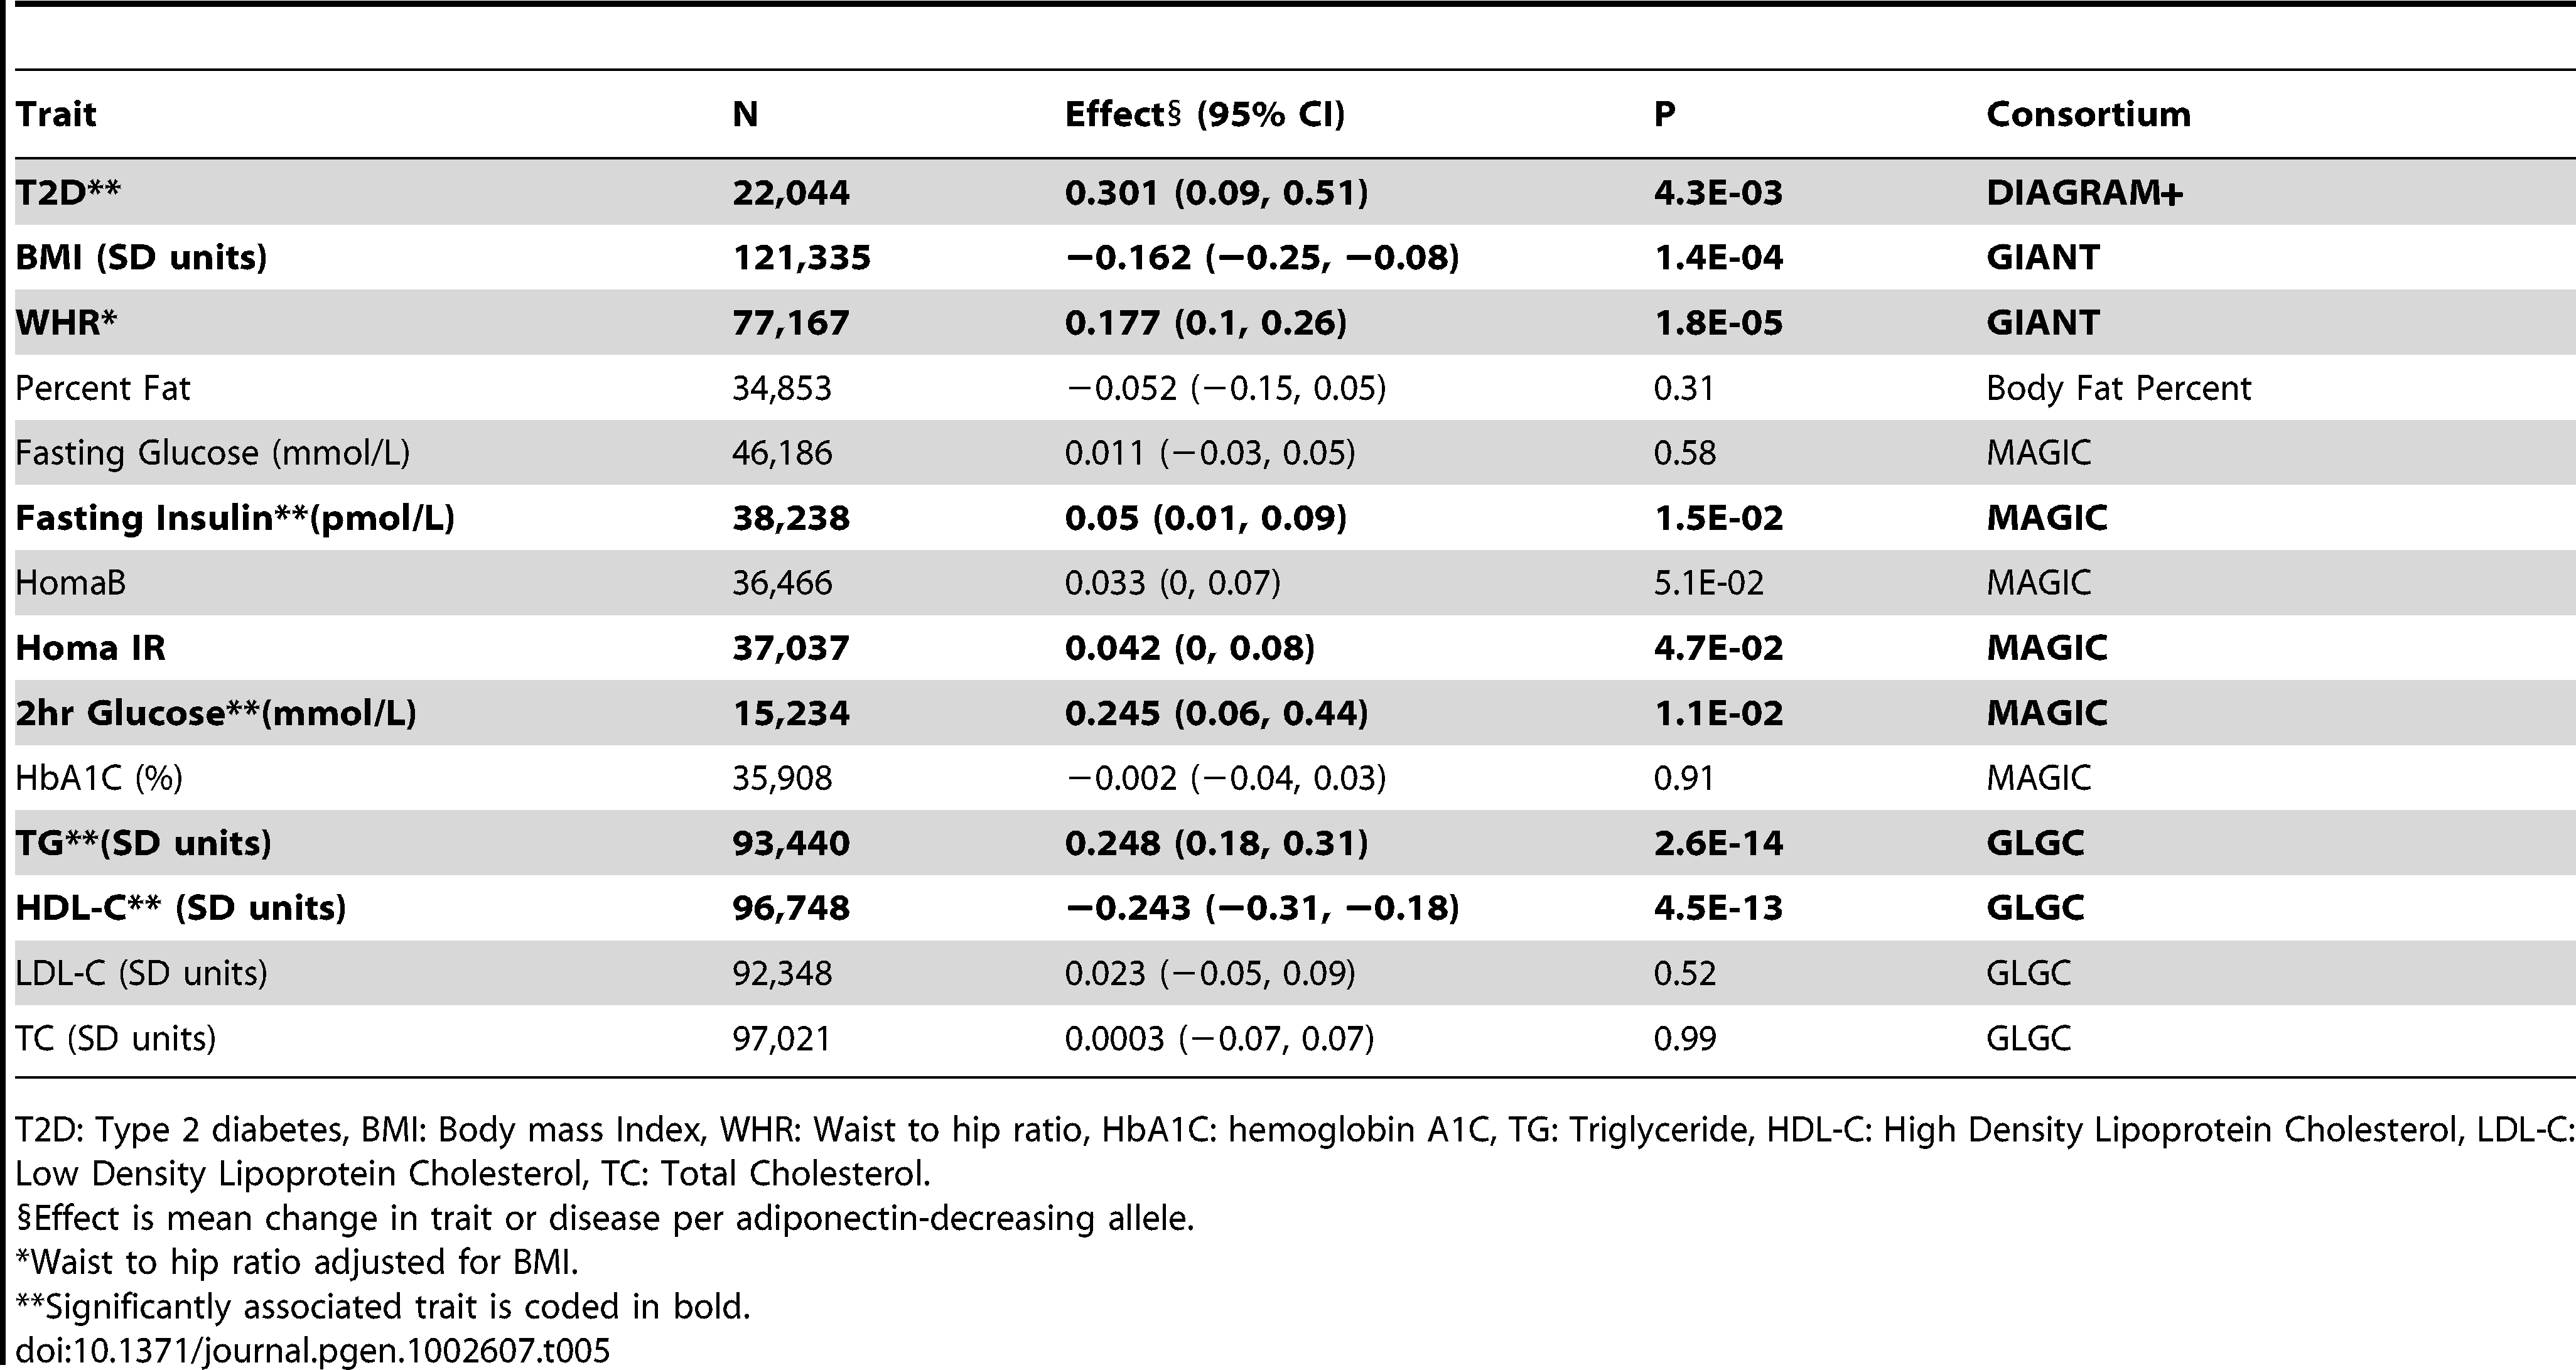 Results of Association of Multi-SNP Genotypic Risk Score with Diabetes and Related Traits.